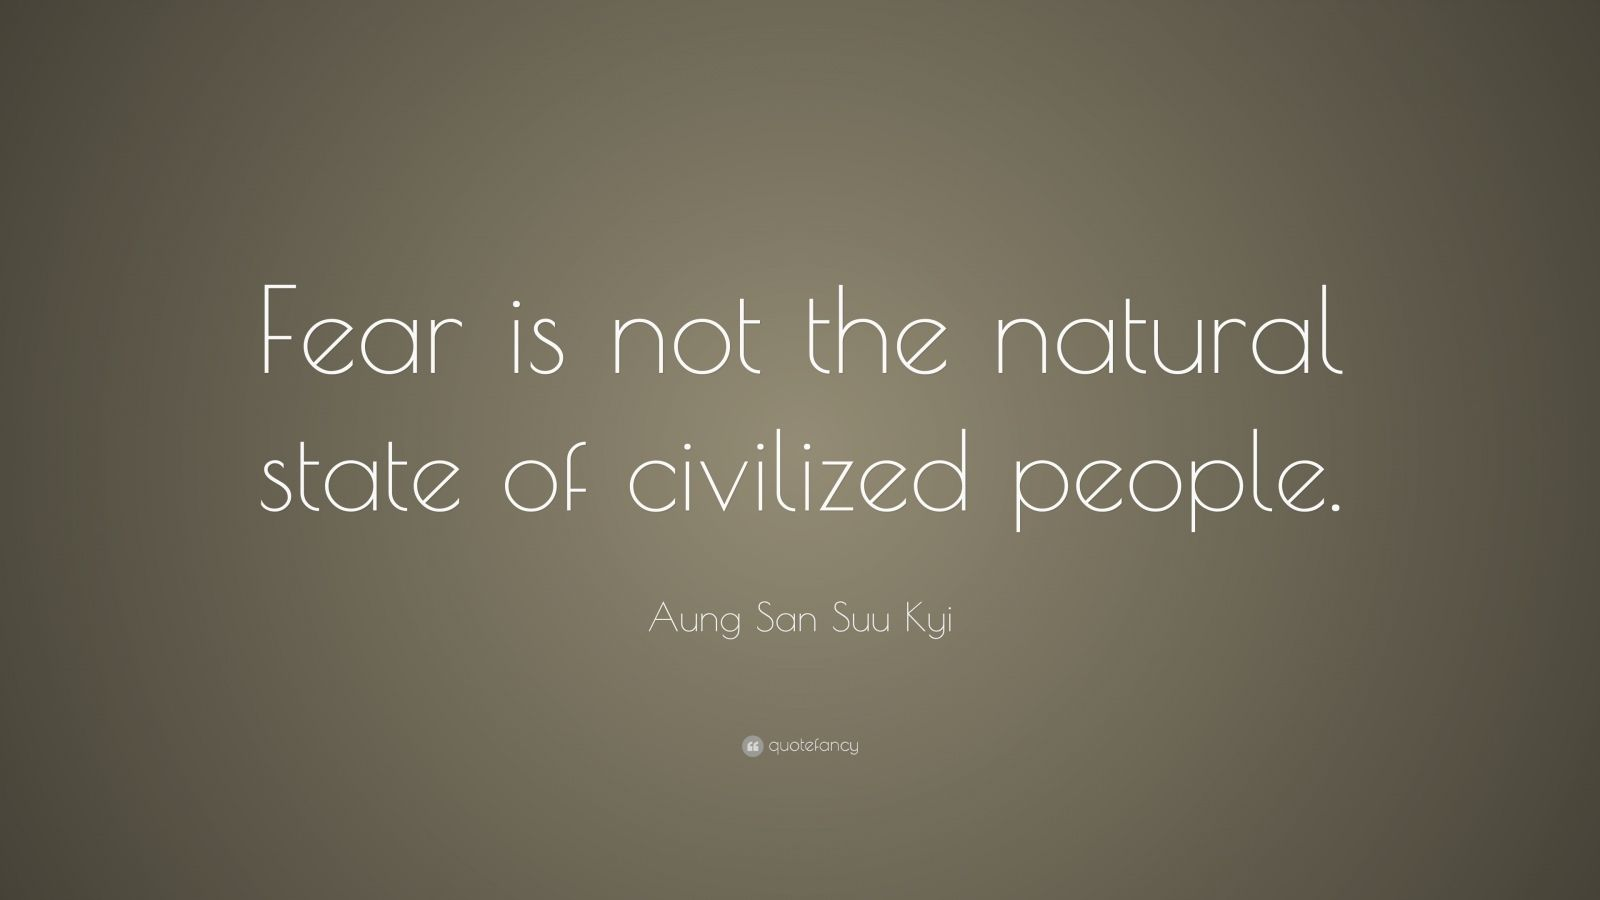 """Aung San Suu Kyi Quote: """"Fear is not the natural state of civilized people."""""""